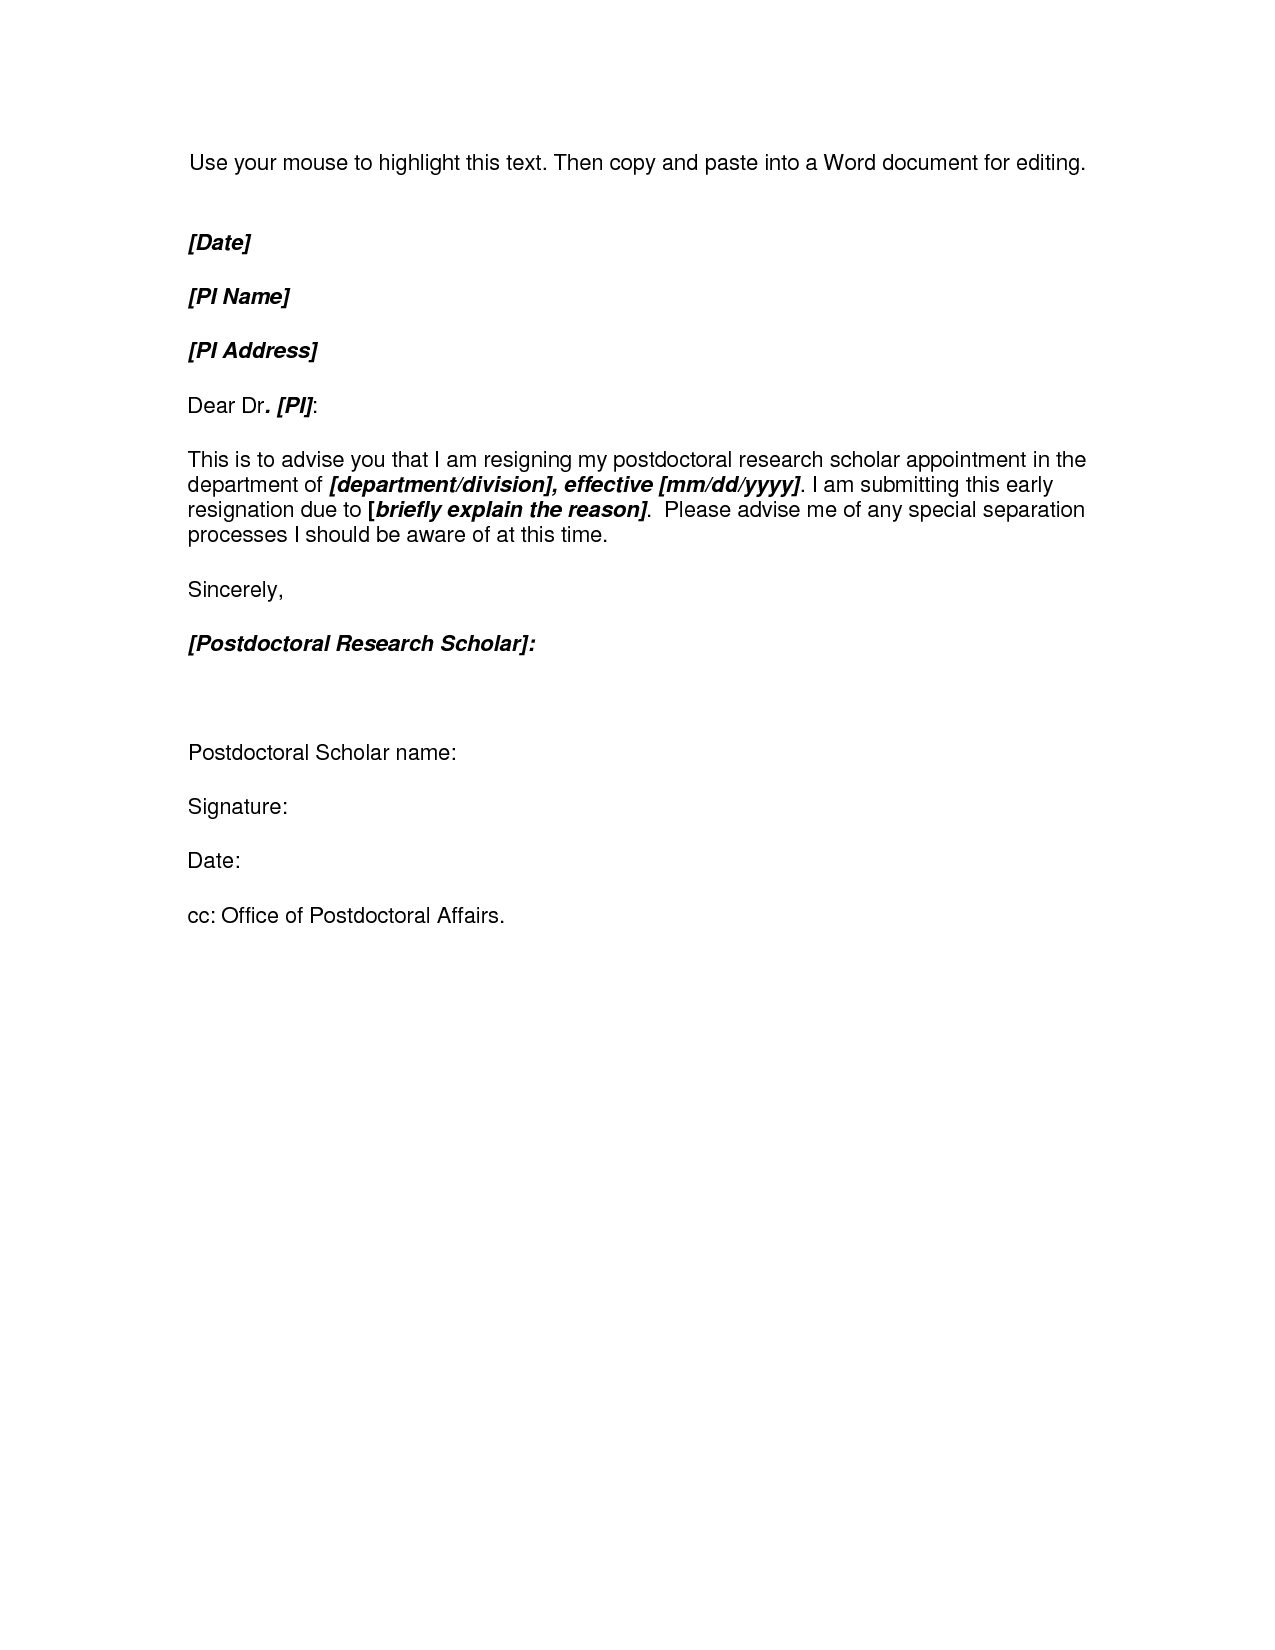 Resignation Letter Template Word Free - Microsoft Word Resignation Letter Template